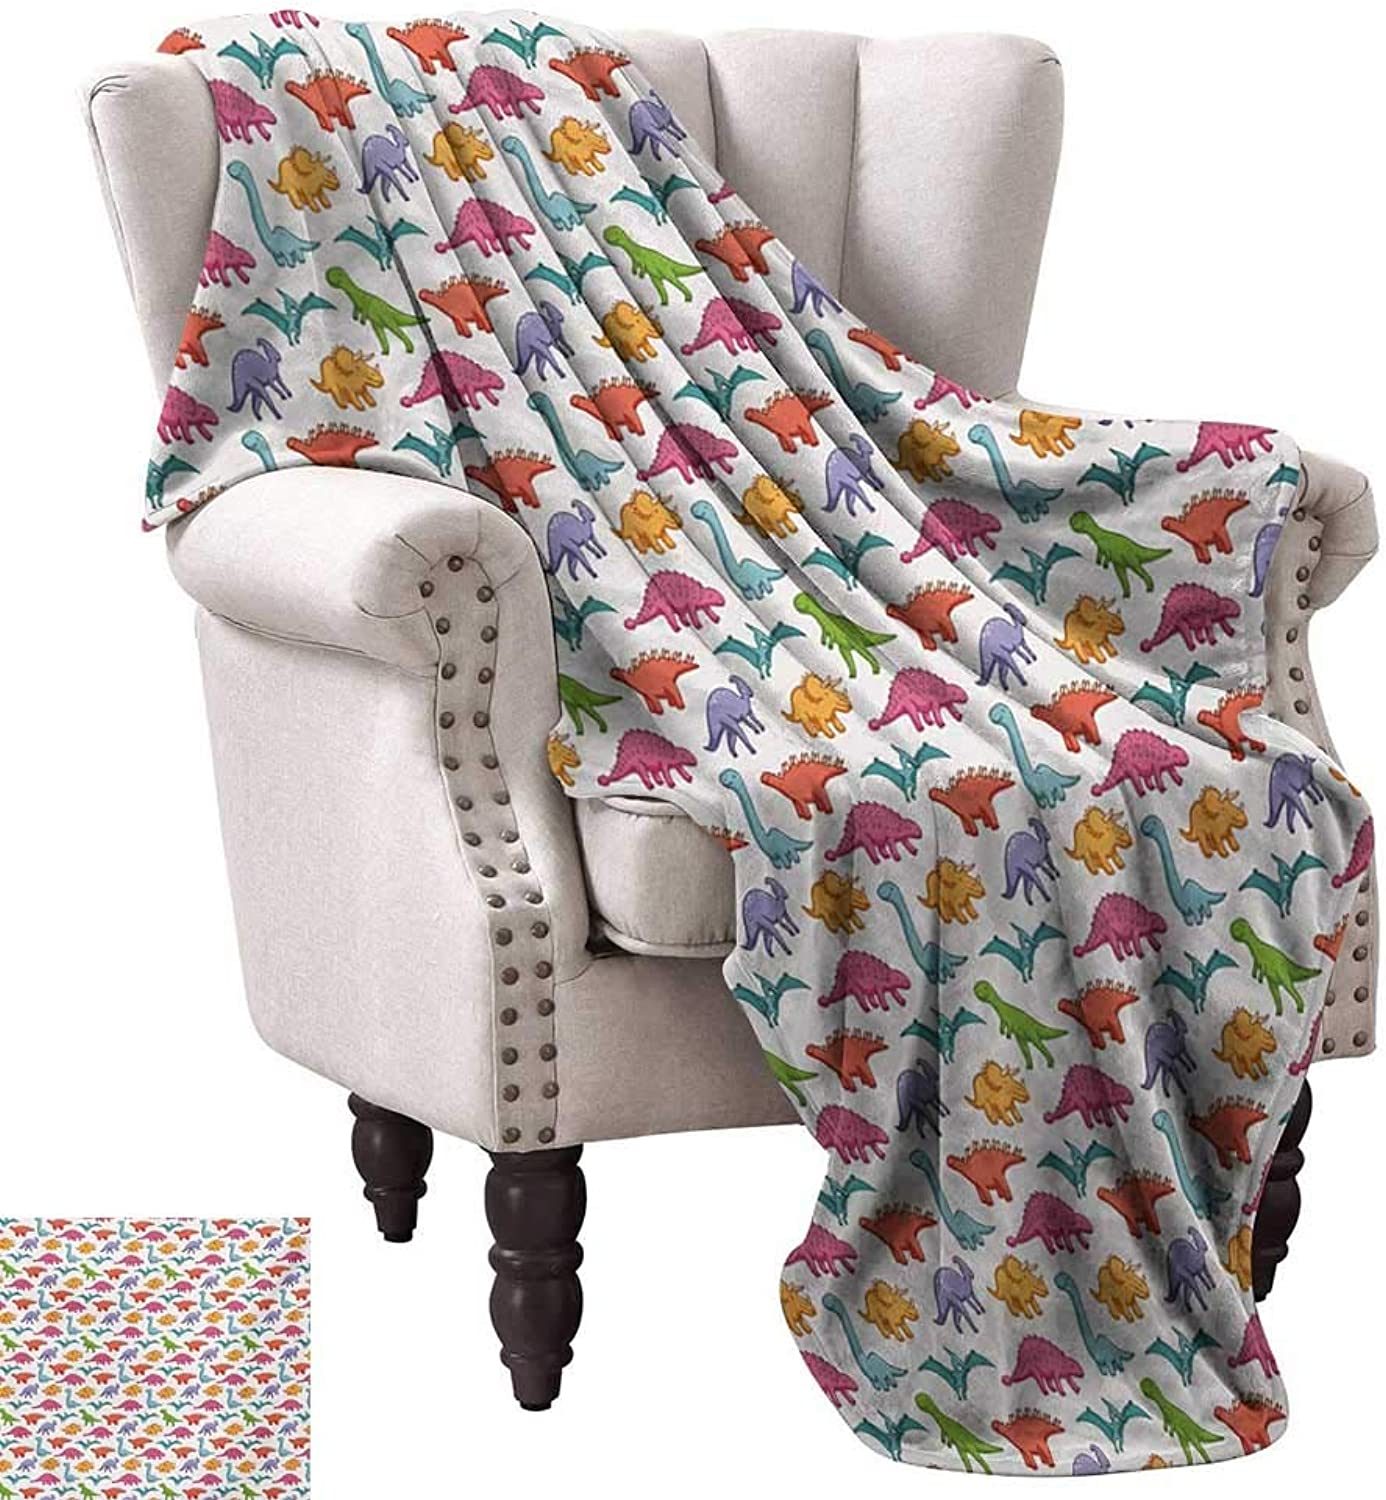 Super Soft Lightweight Blanket,Variety of Dinosaurs in colorful Cartoon Style Cute Archeology Pattern for Kids 70 x60 ,Super Soft and Comfortable,Suitable for Sofas,Chairs,beds